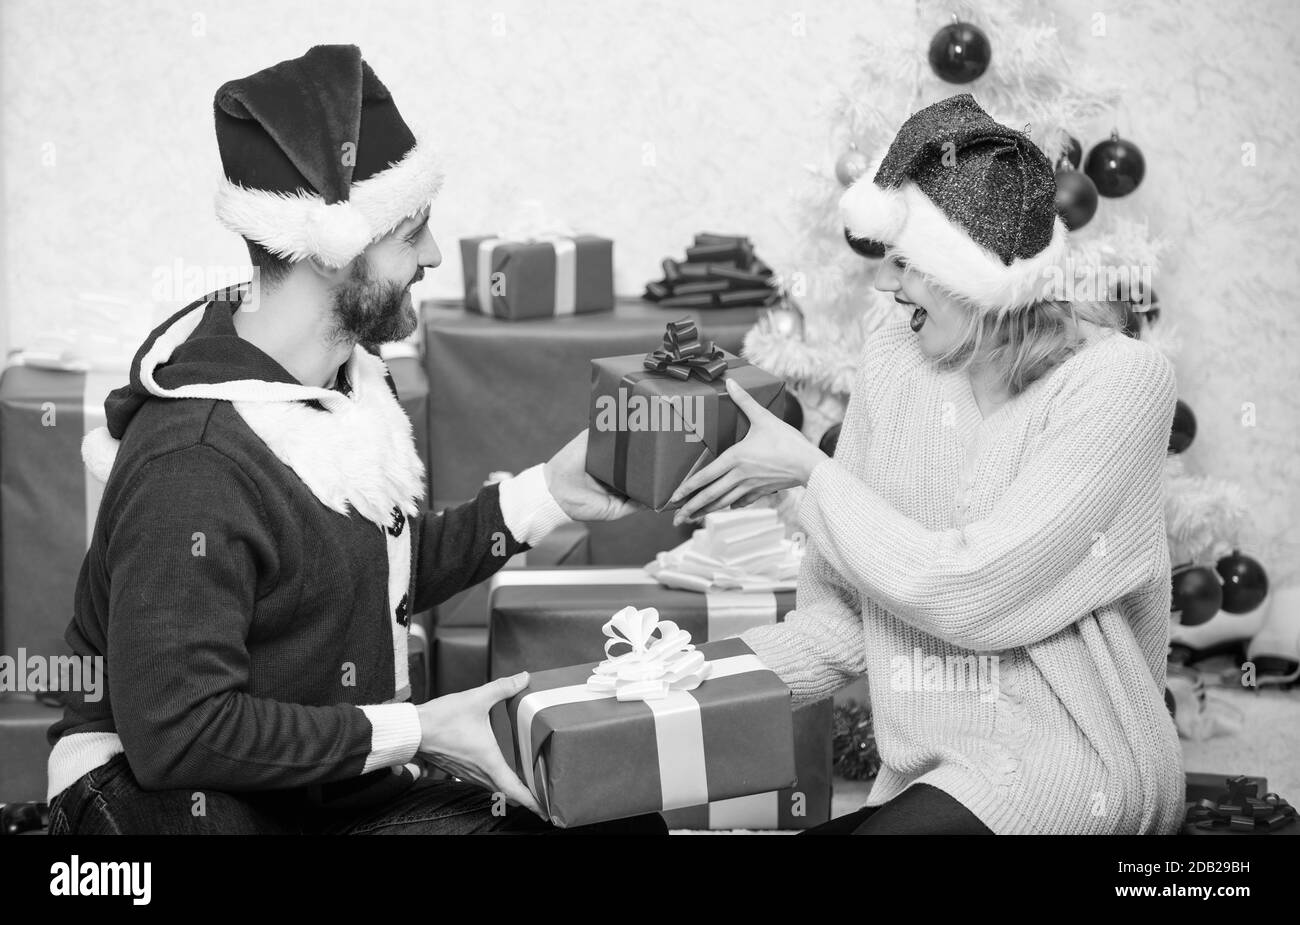 Opening christmas present. Couple in love happy enjoy christmas holiday celebration. Loving couple cuddle smiling while unpacking gift christmas tree background. Family prepared christmas gifts. Stock Photo